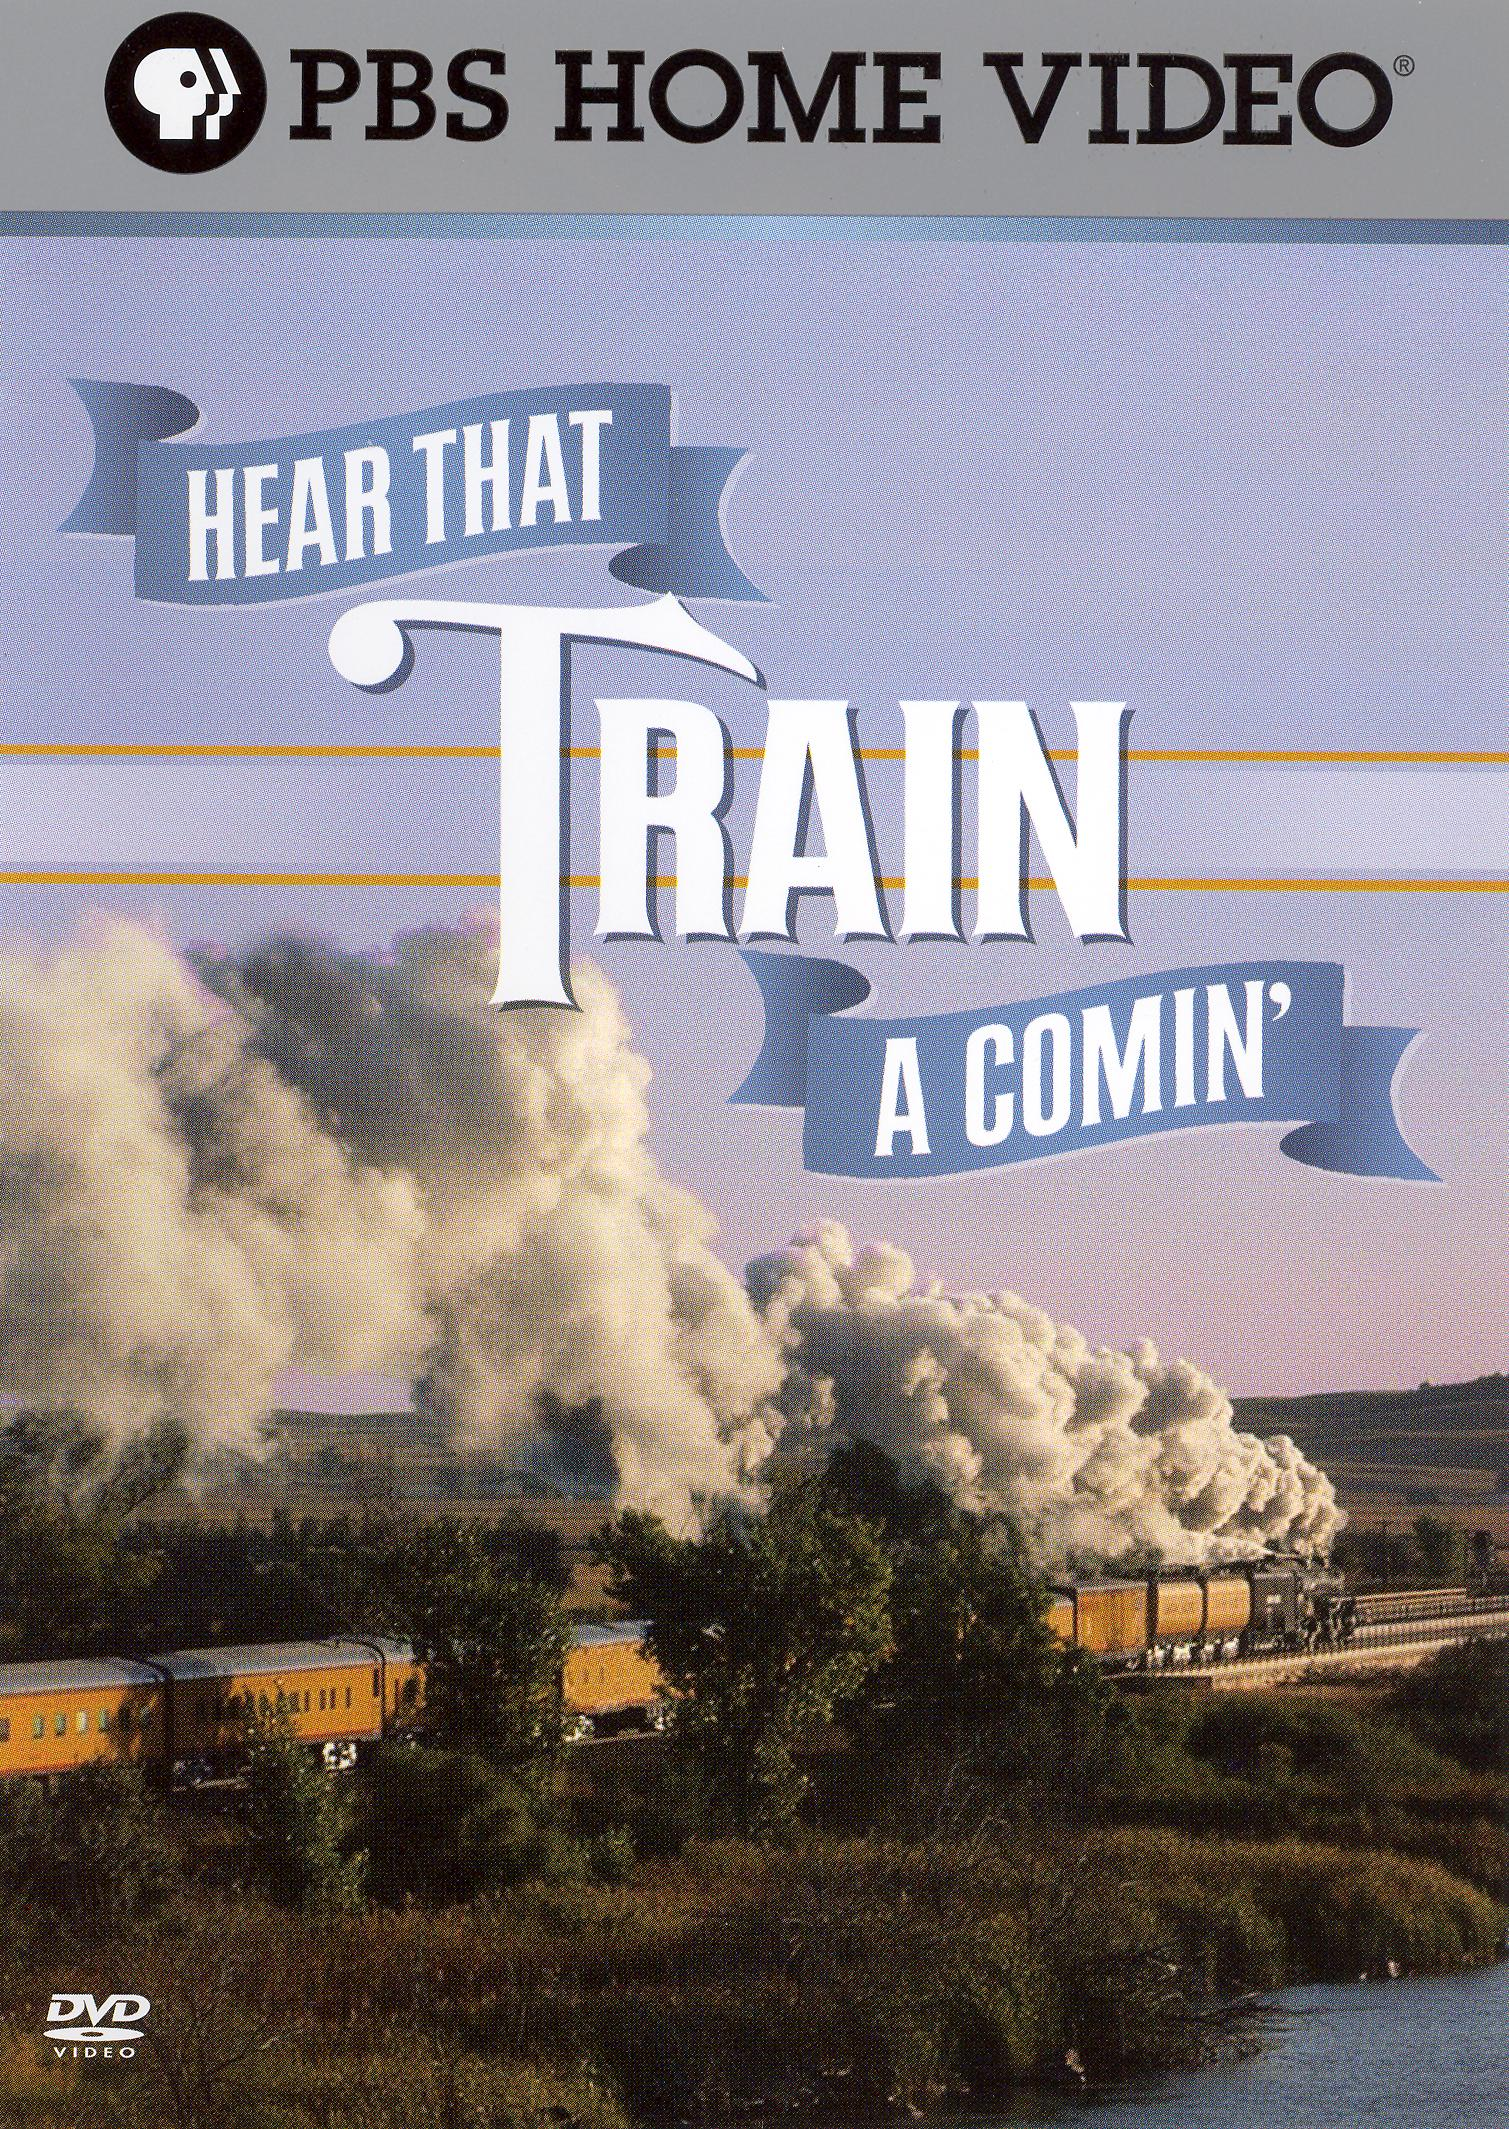 Hear That Train A' Comin'